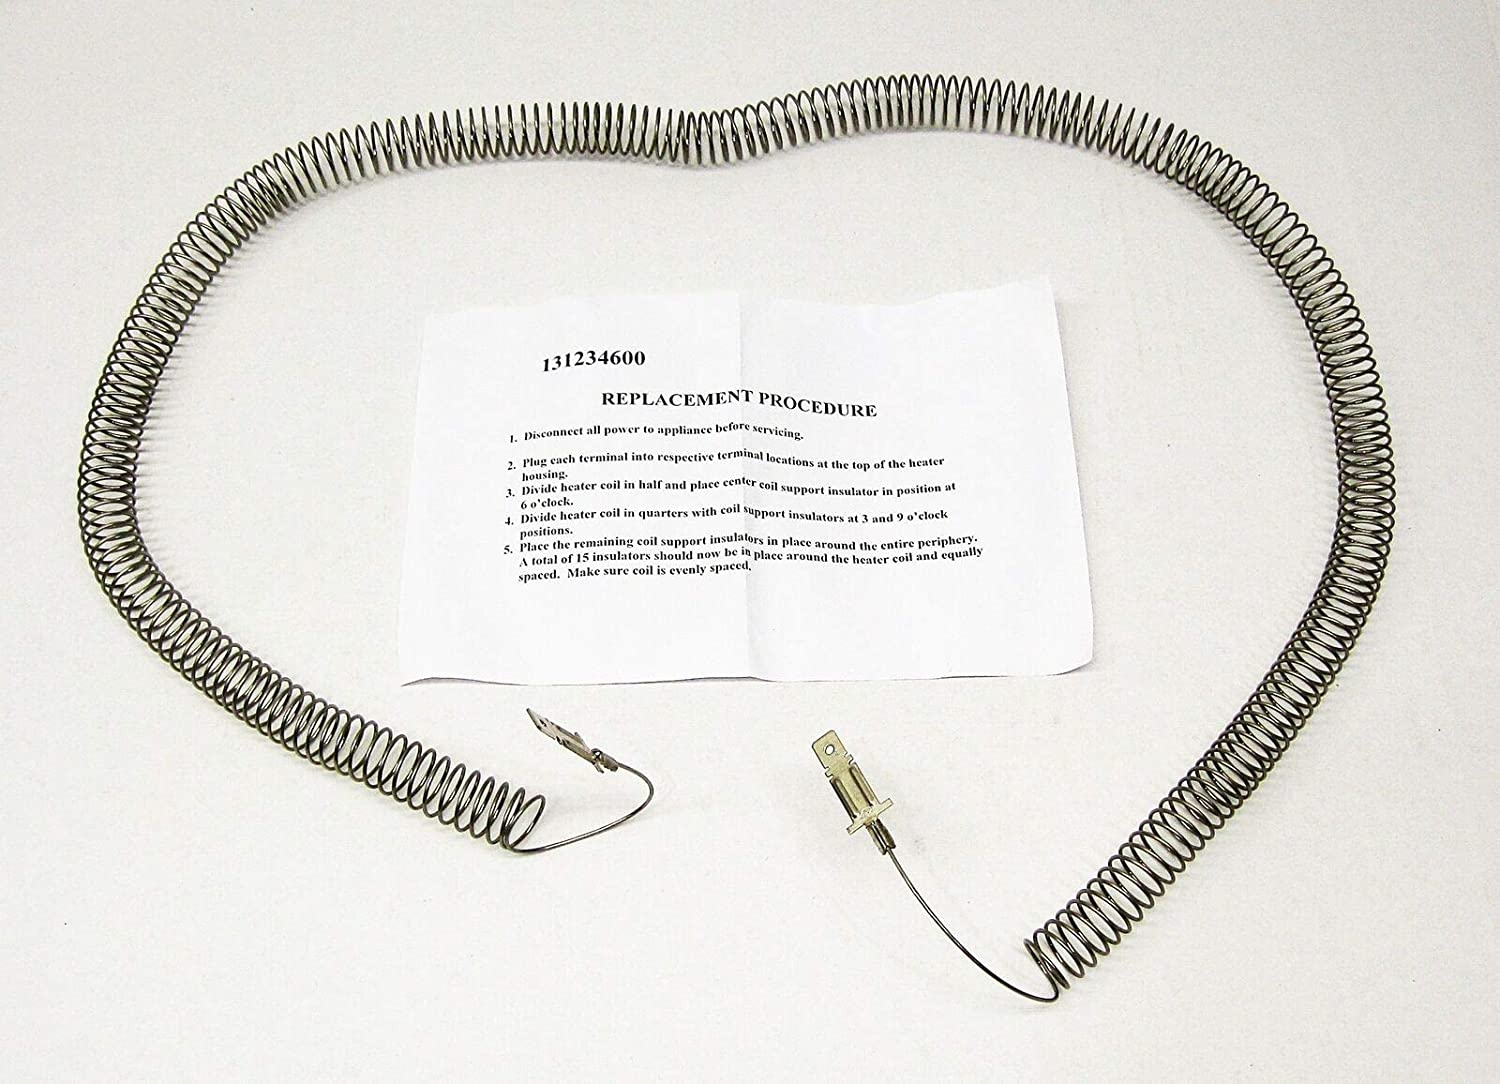 New Dryer Heating Element Restring 131234600 for Frigidaire 131475320 131475300